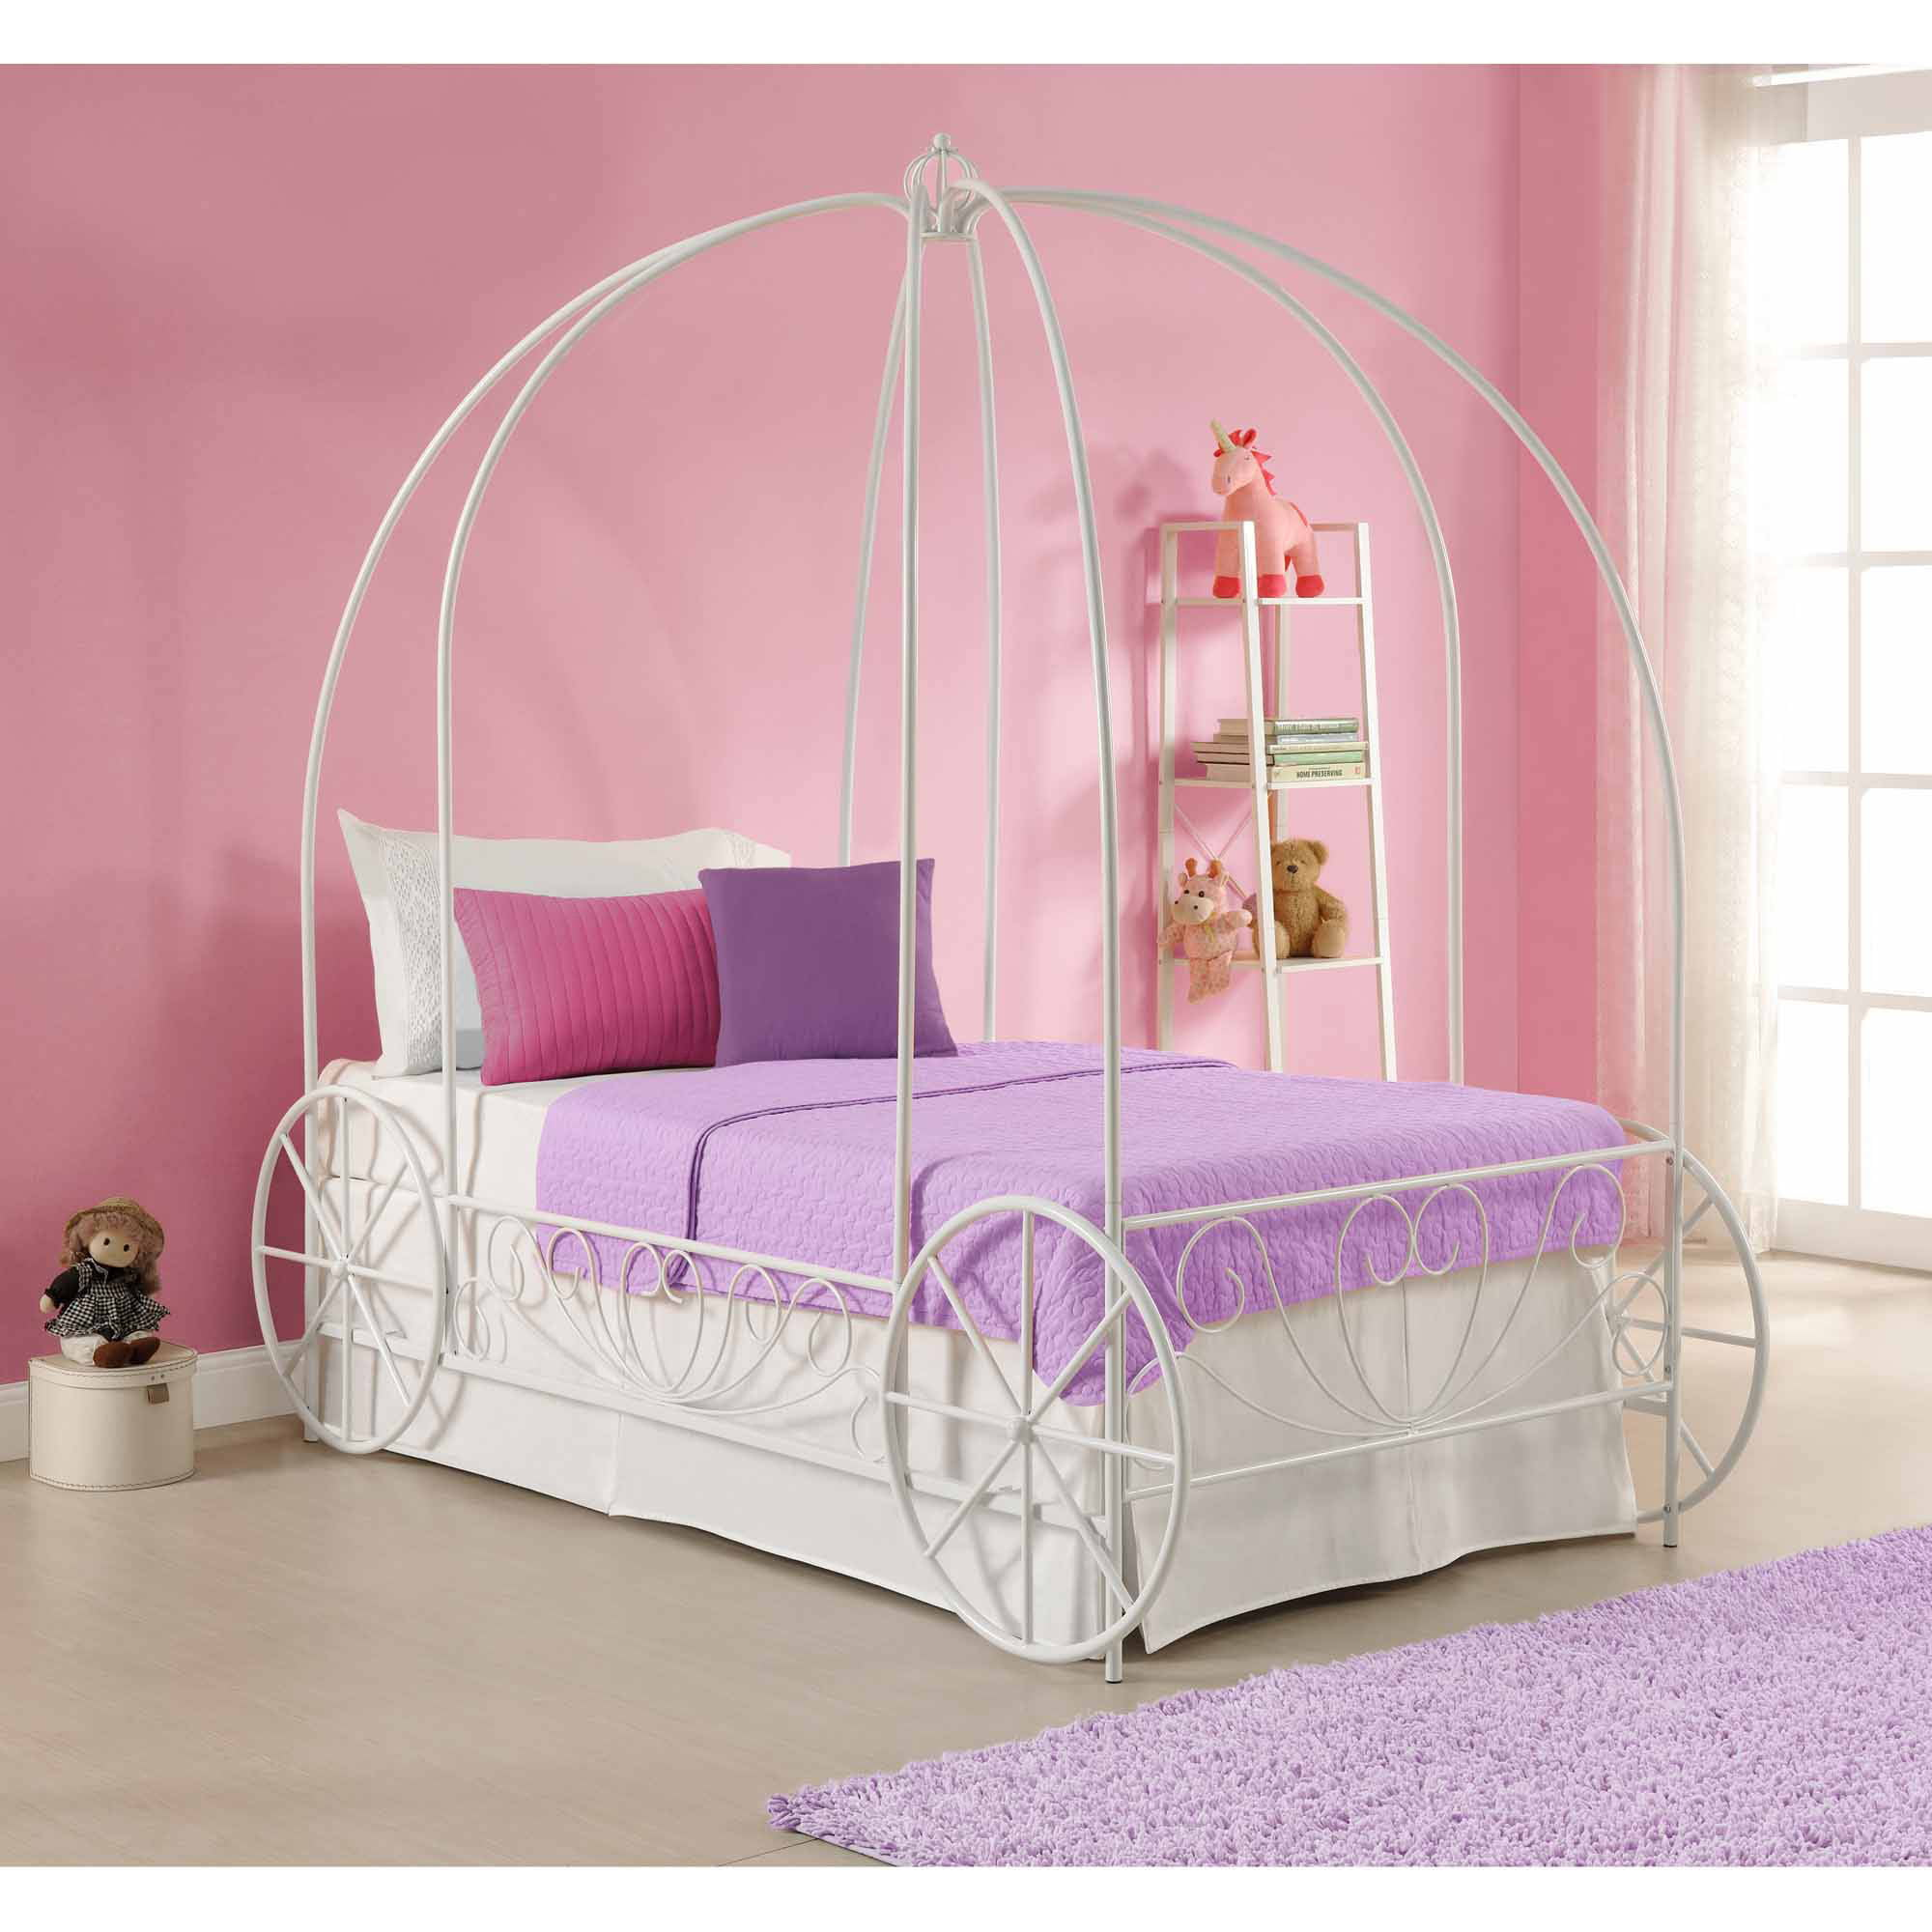 & Dorel DHP Metal Twin Carriage Bed Multiple Colors - Walmart.com